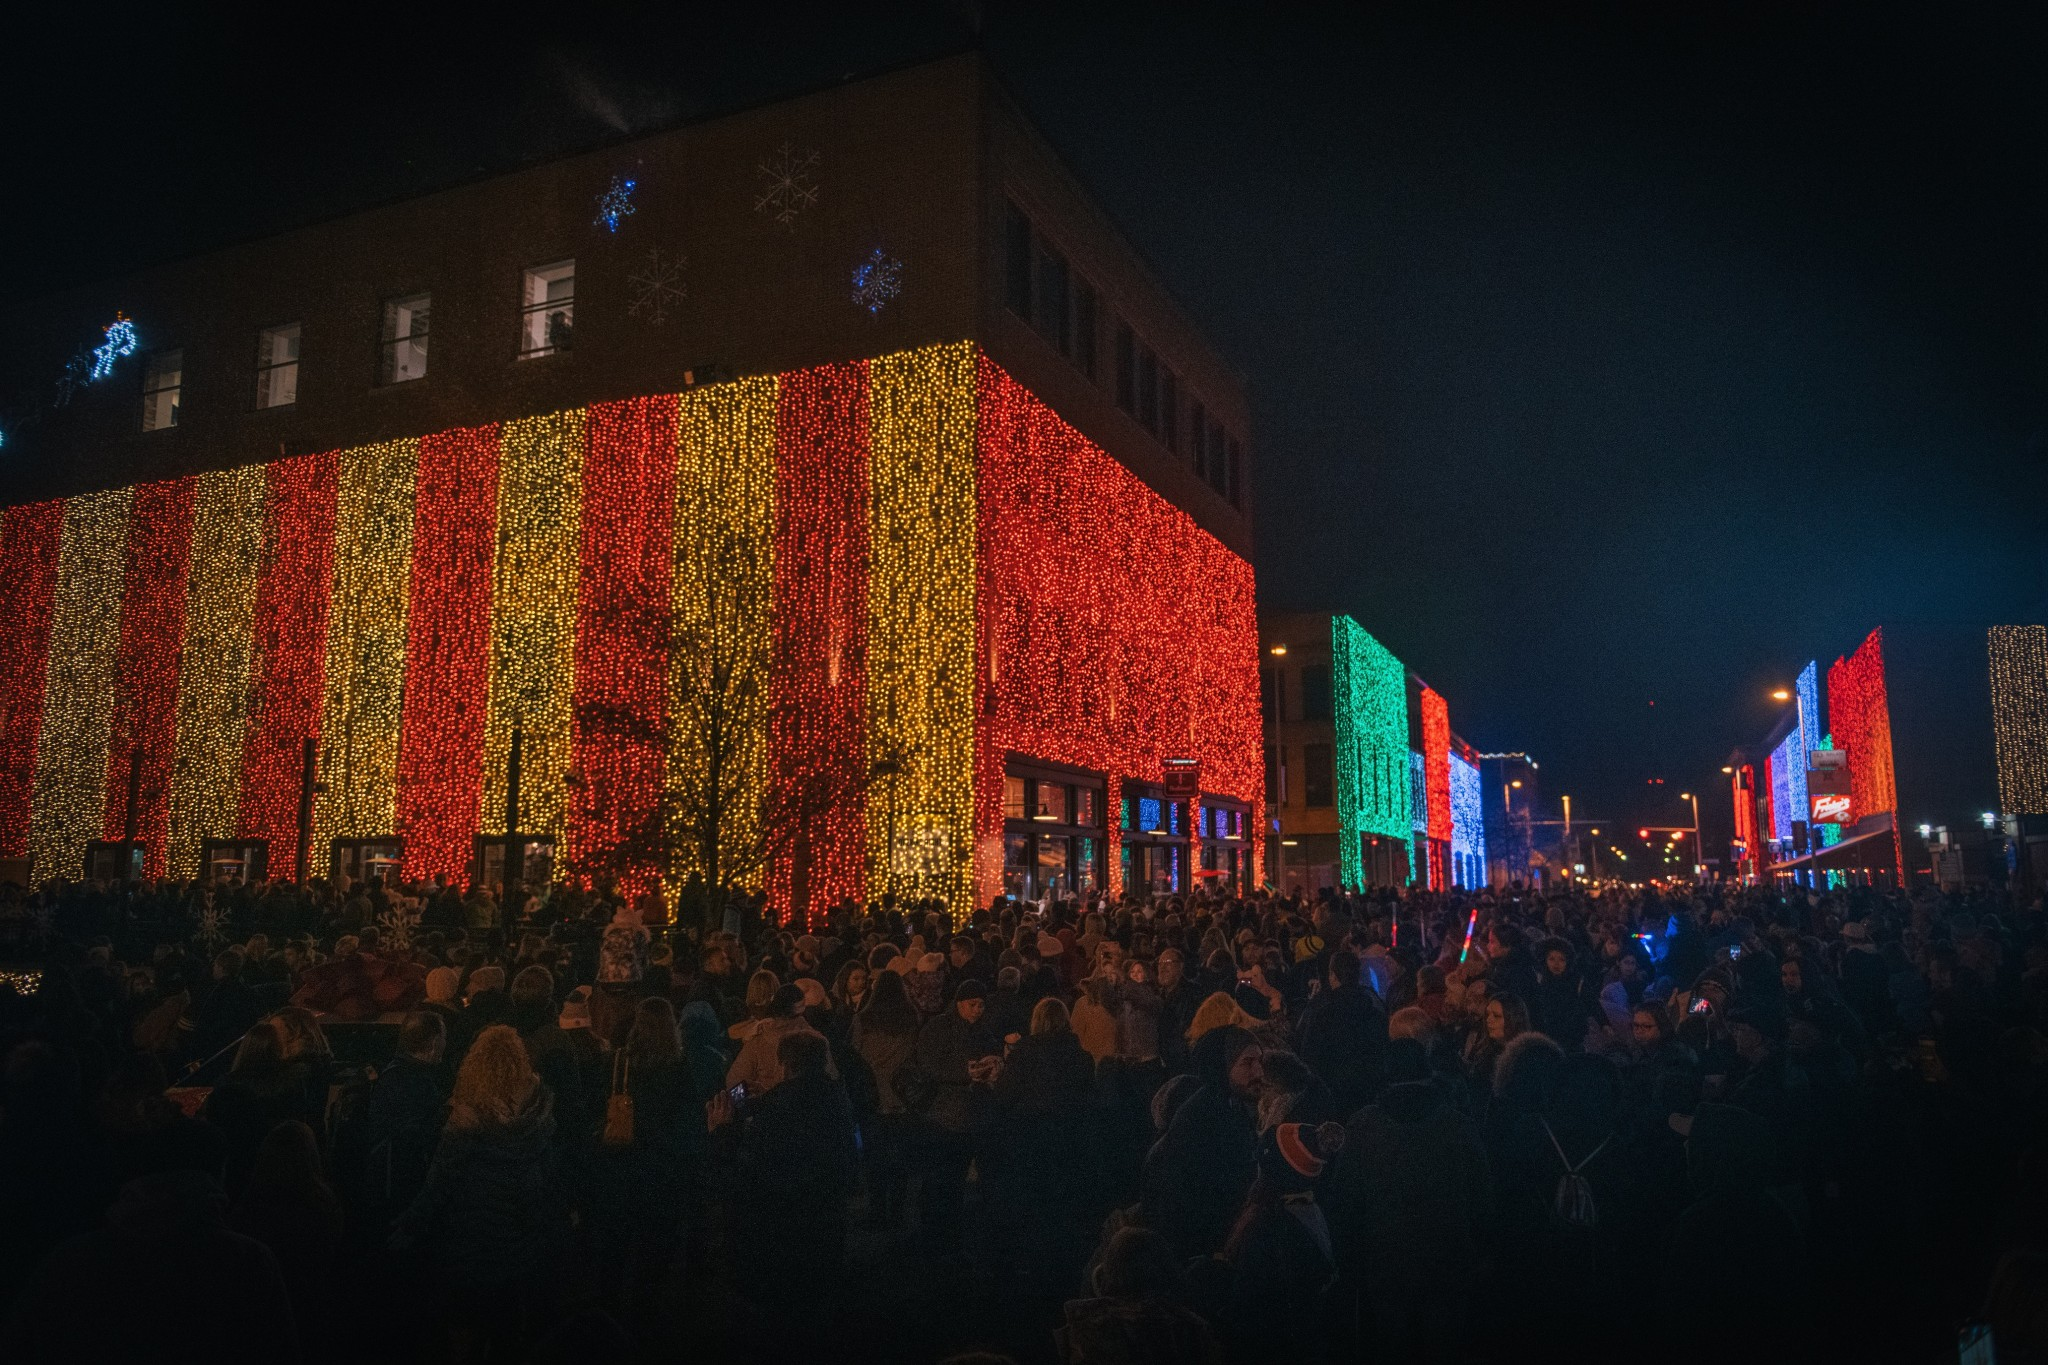 Hensville Lights is returning bigger and brighter for the 2019 holiday season. From Nov. 23 through Jan. 5, 2020, 200,000 twinkling lights will transform the buildings along St. Clair Street in downtown Toledo into a sparkling holiday wonderland. ( Hensville/Robert Wagner)